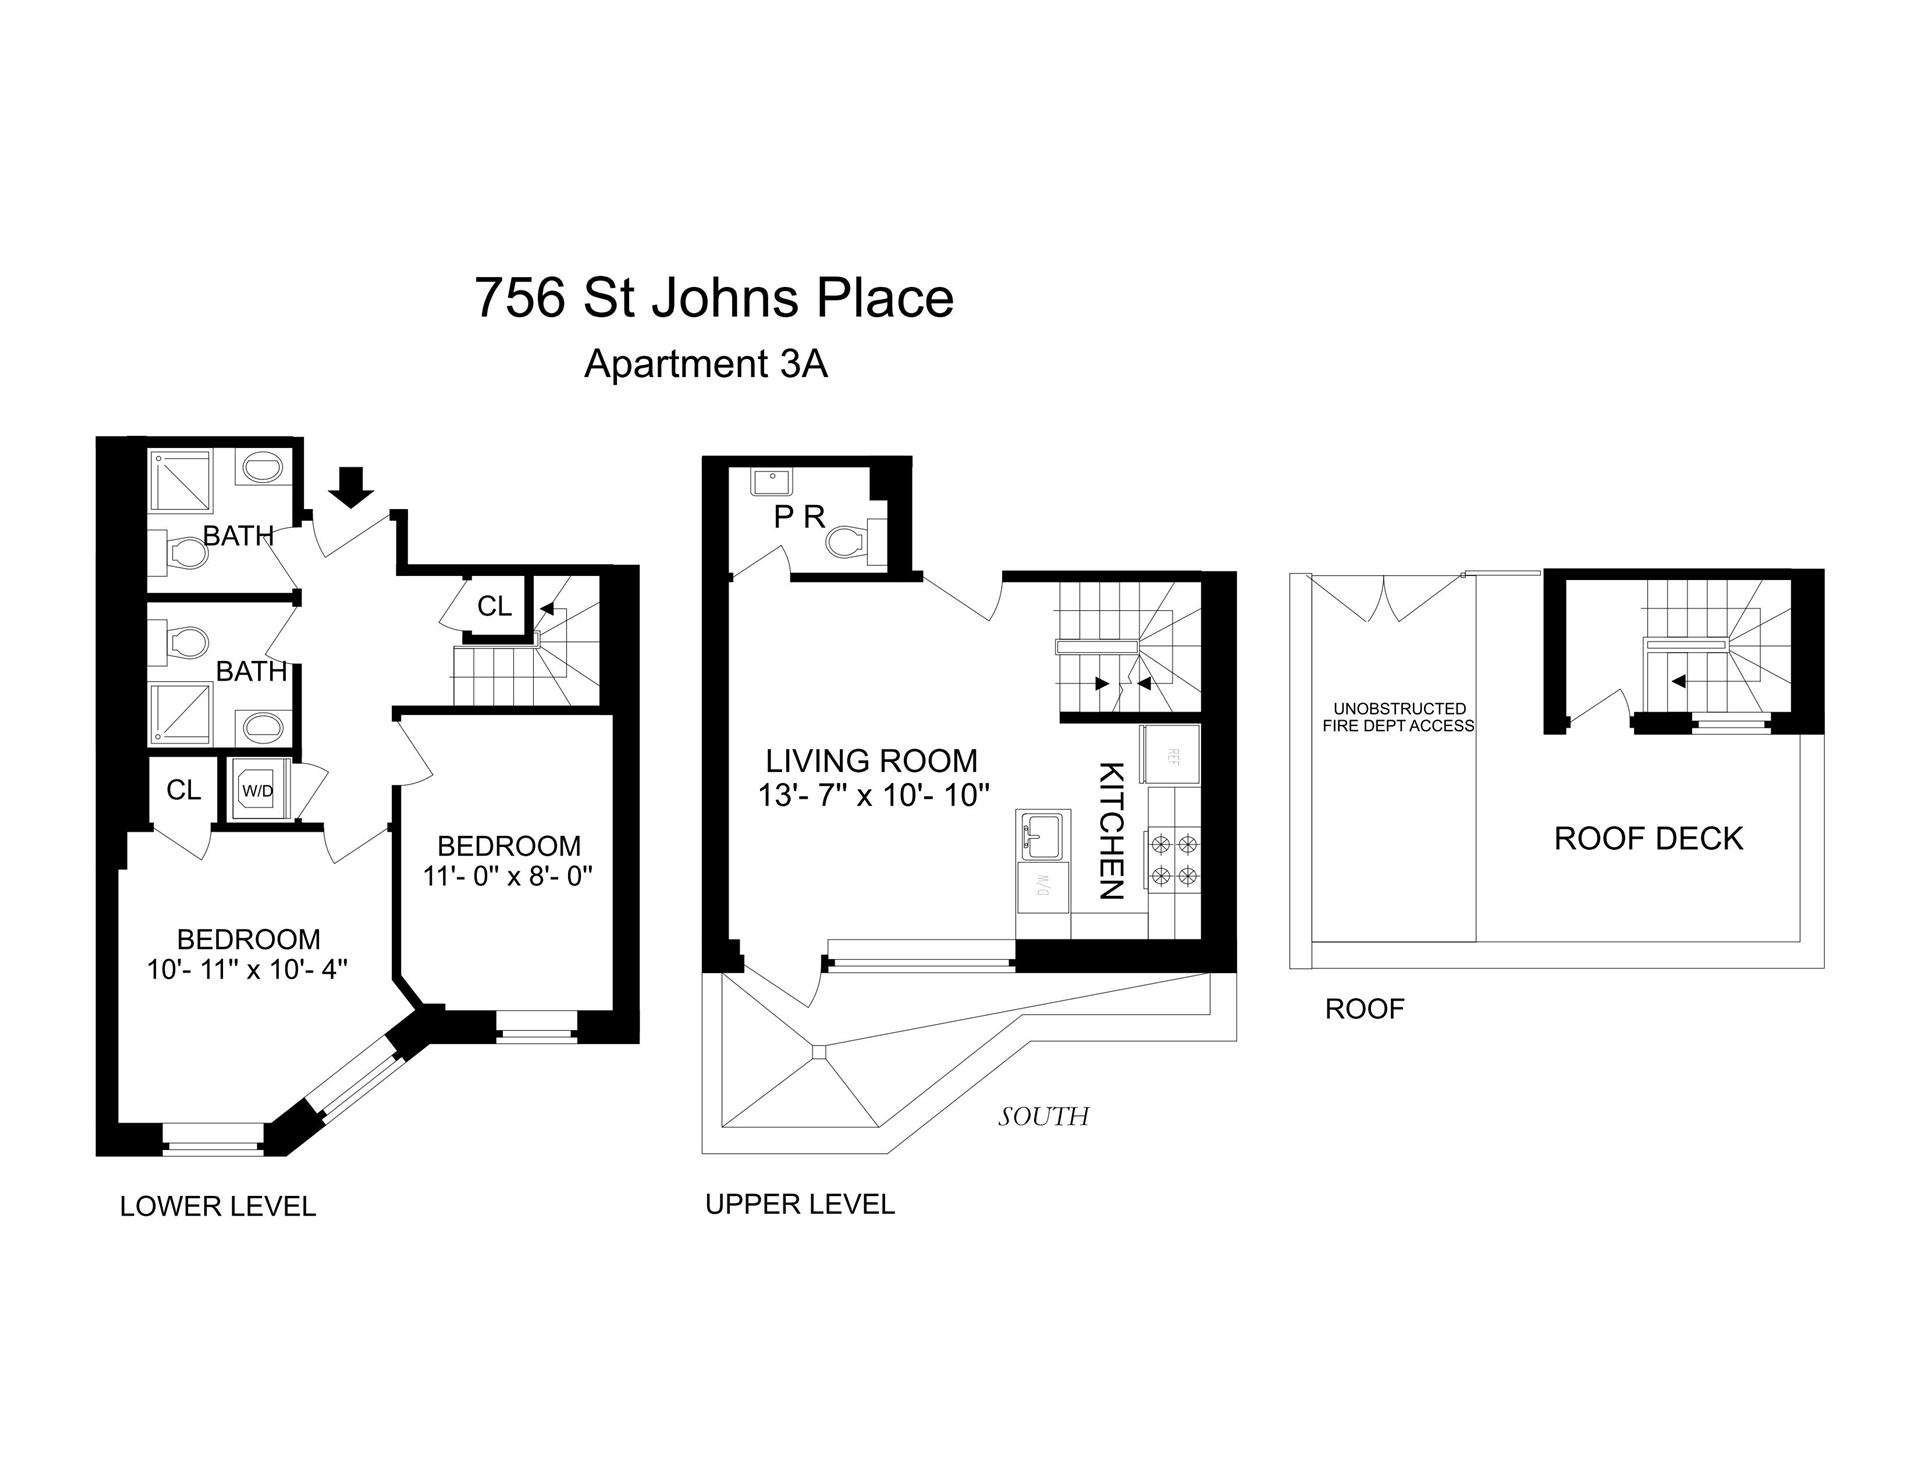 Floor plan of 756 St Johns Pl, 3A - Crown Heights, New York